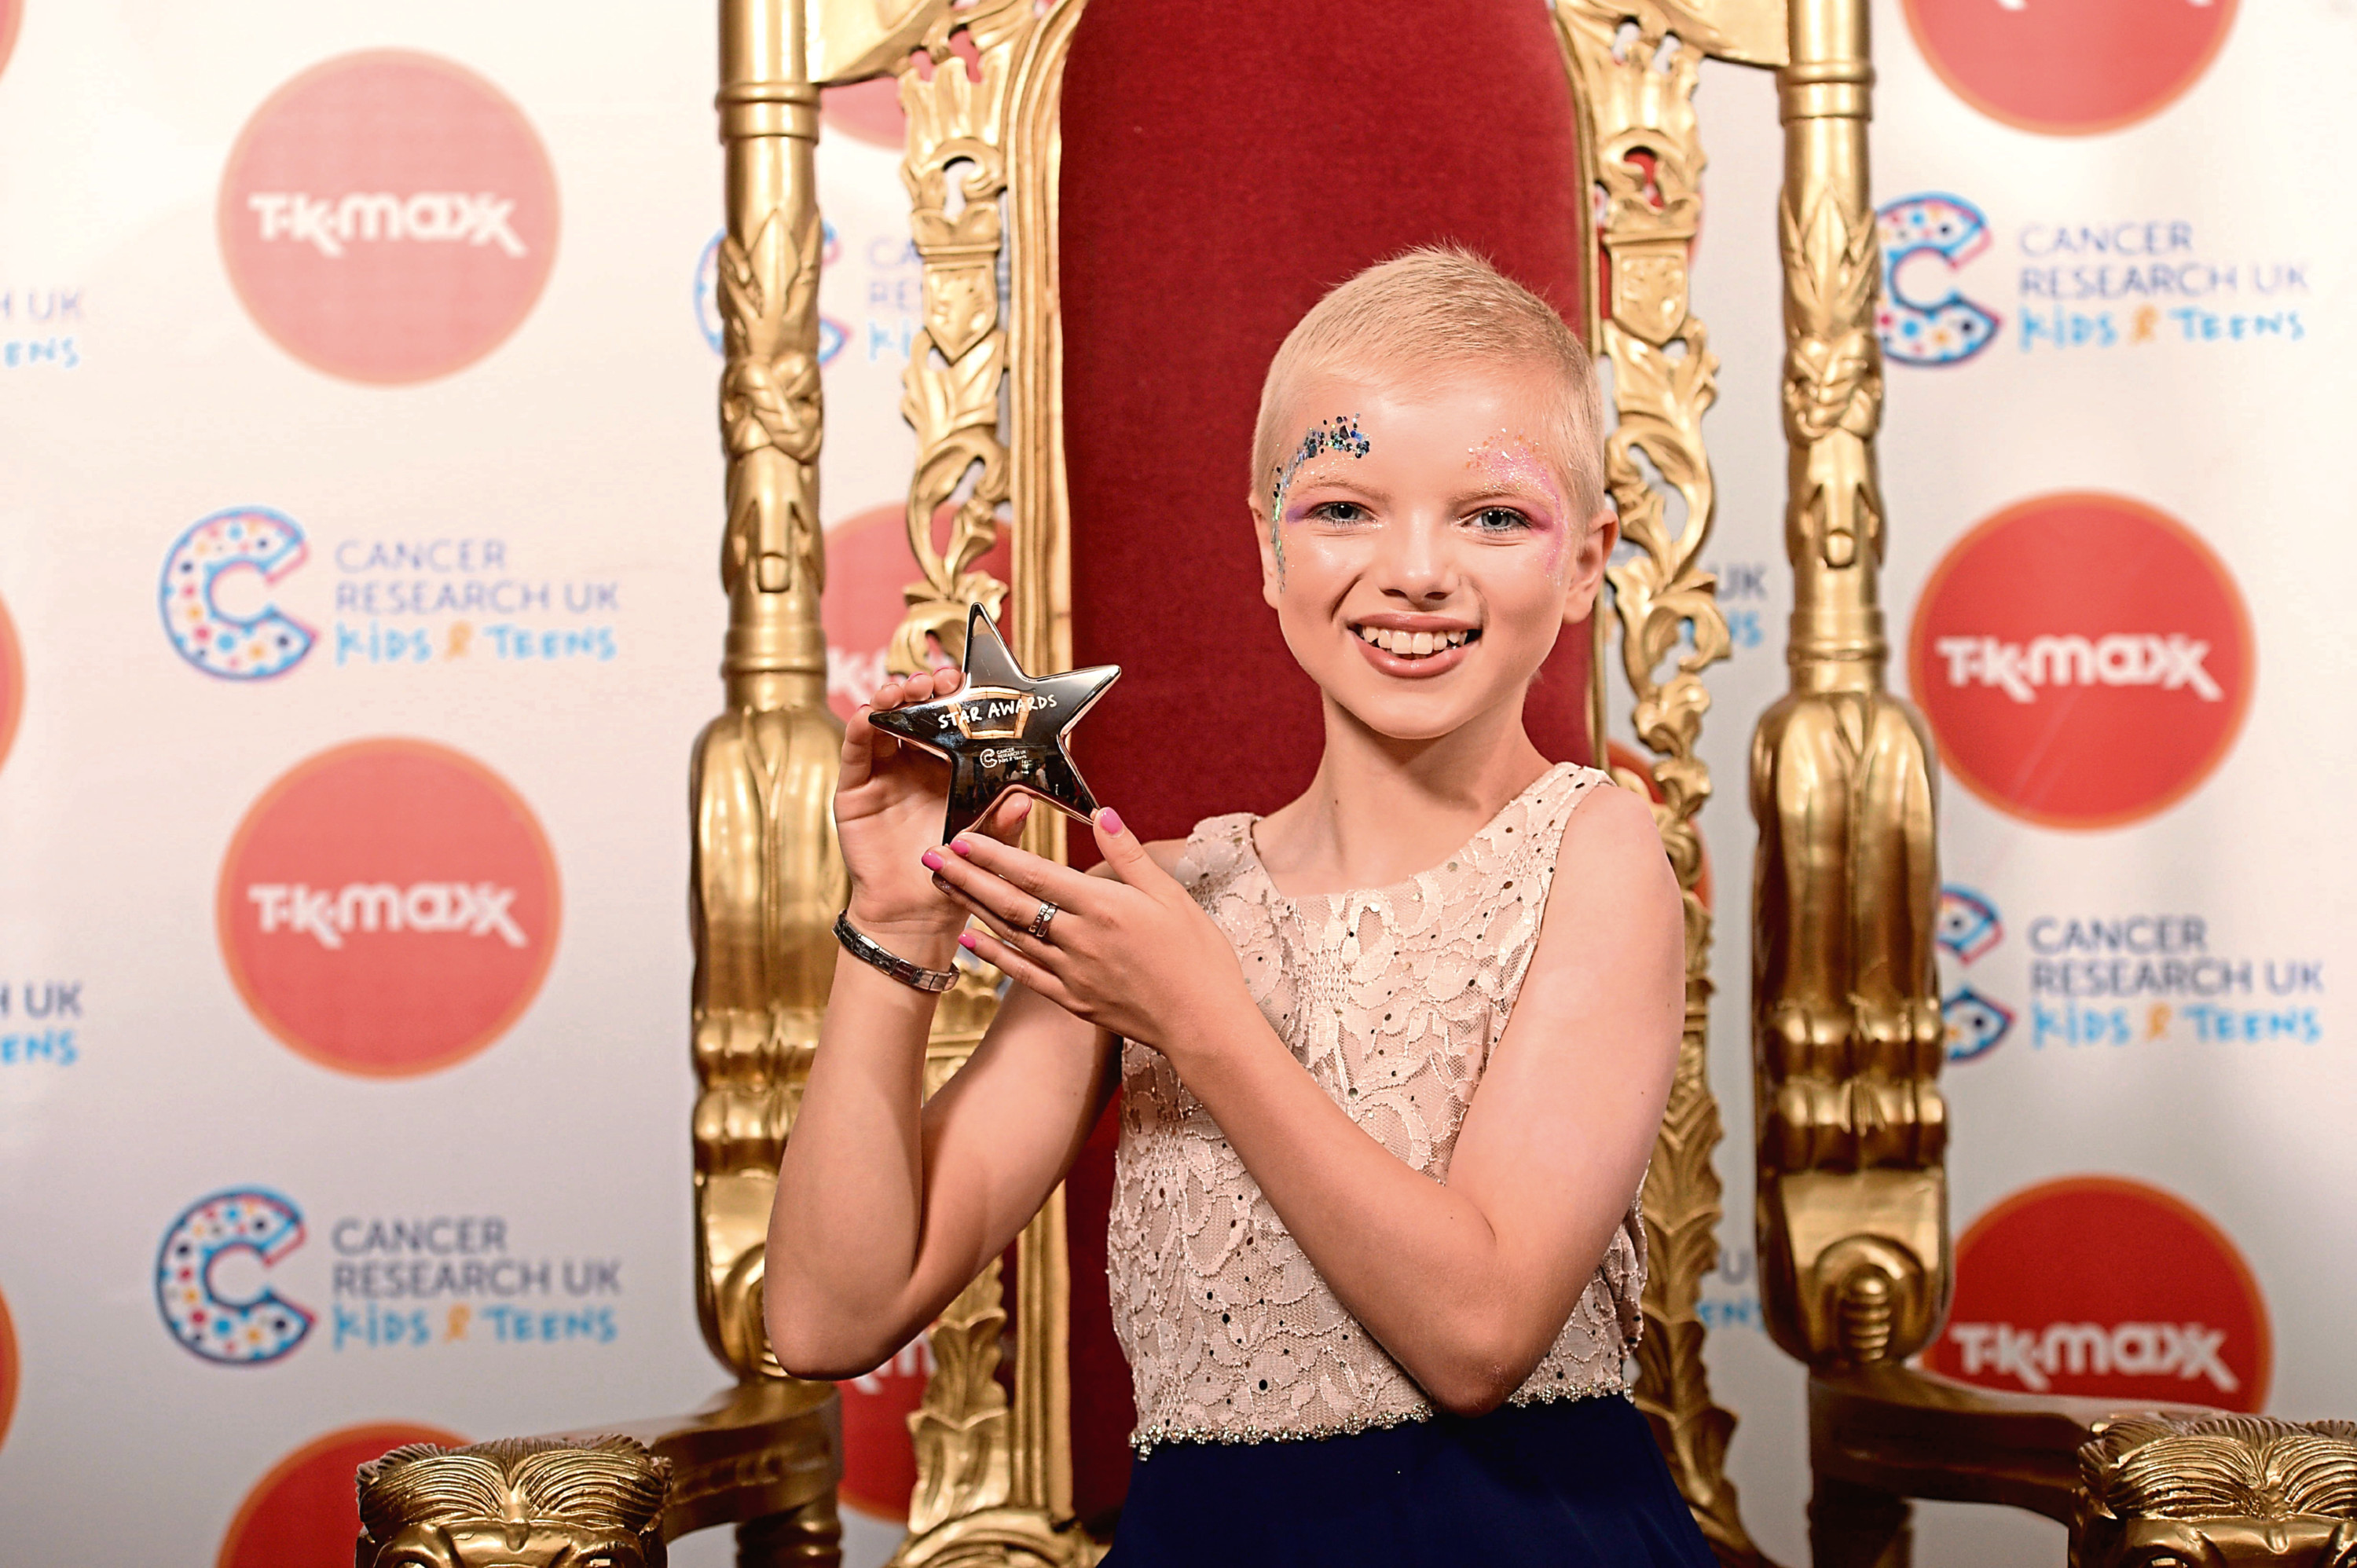 Lily Douglas at Cancer Research UK Kids and Teens Star Awards in London.